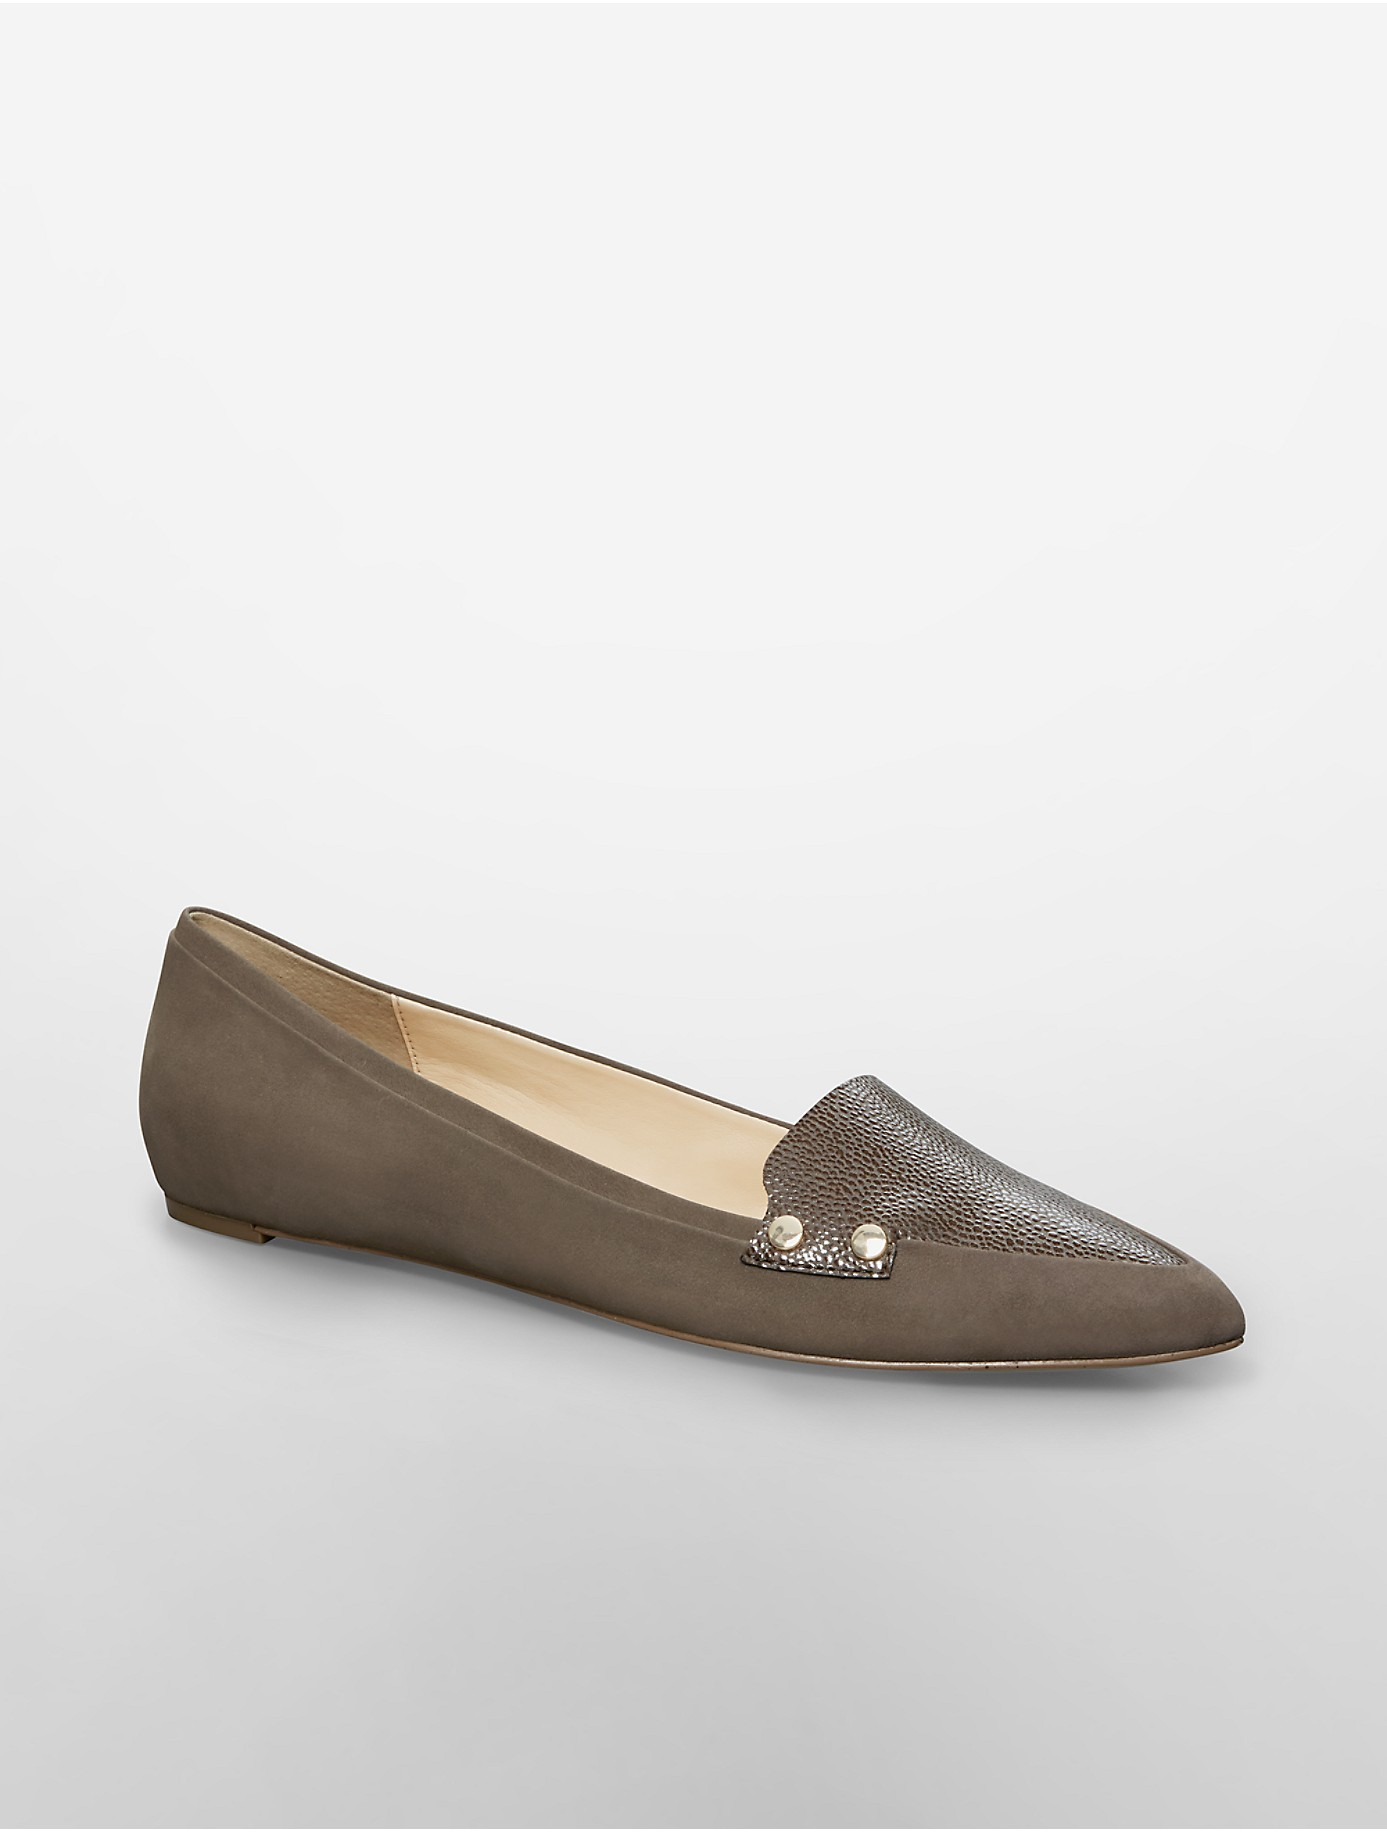 Calvin Klein White Label Beatrice Pointed Toe Flat In Gray | Lyst